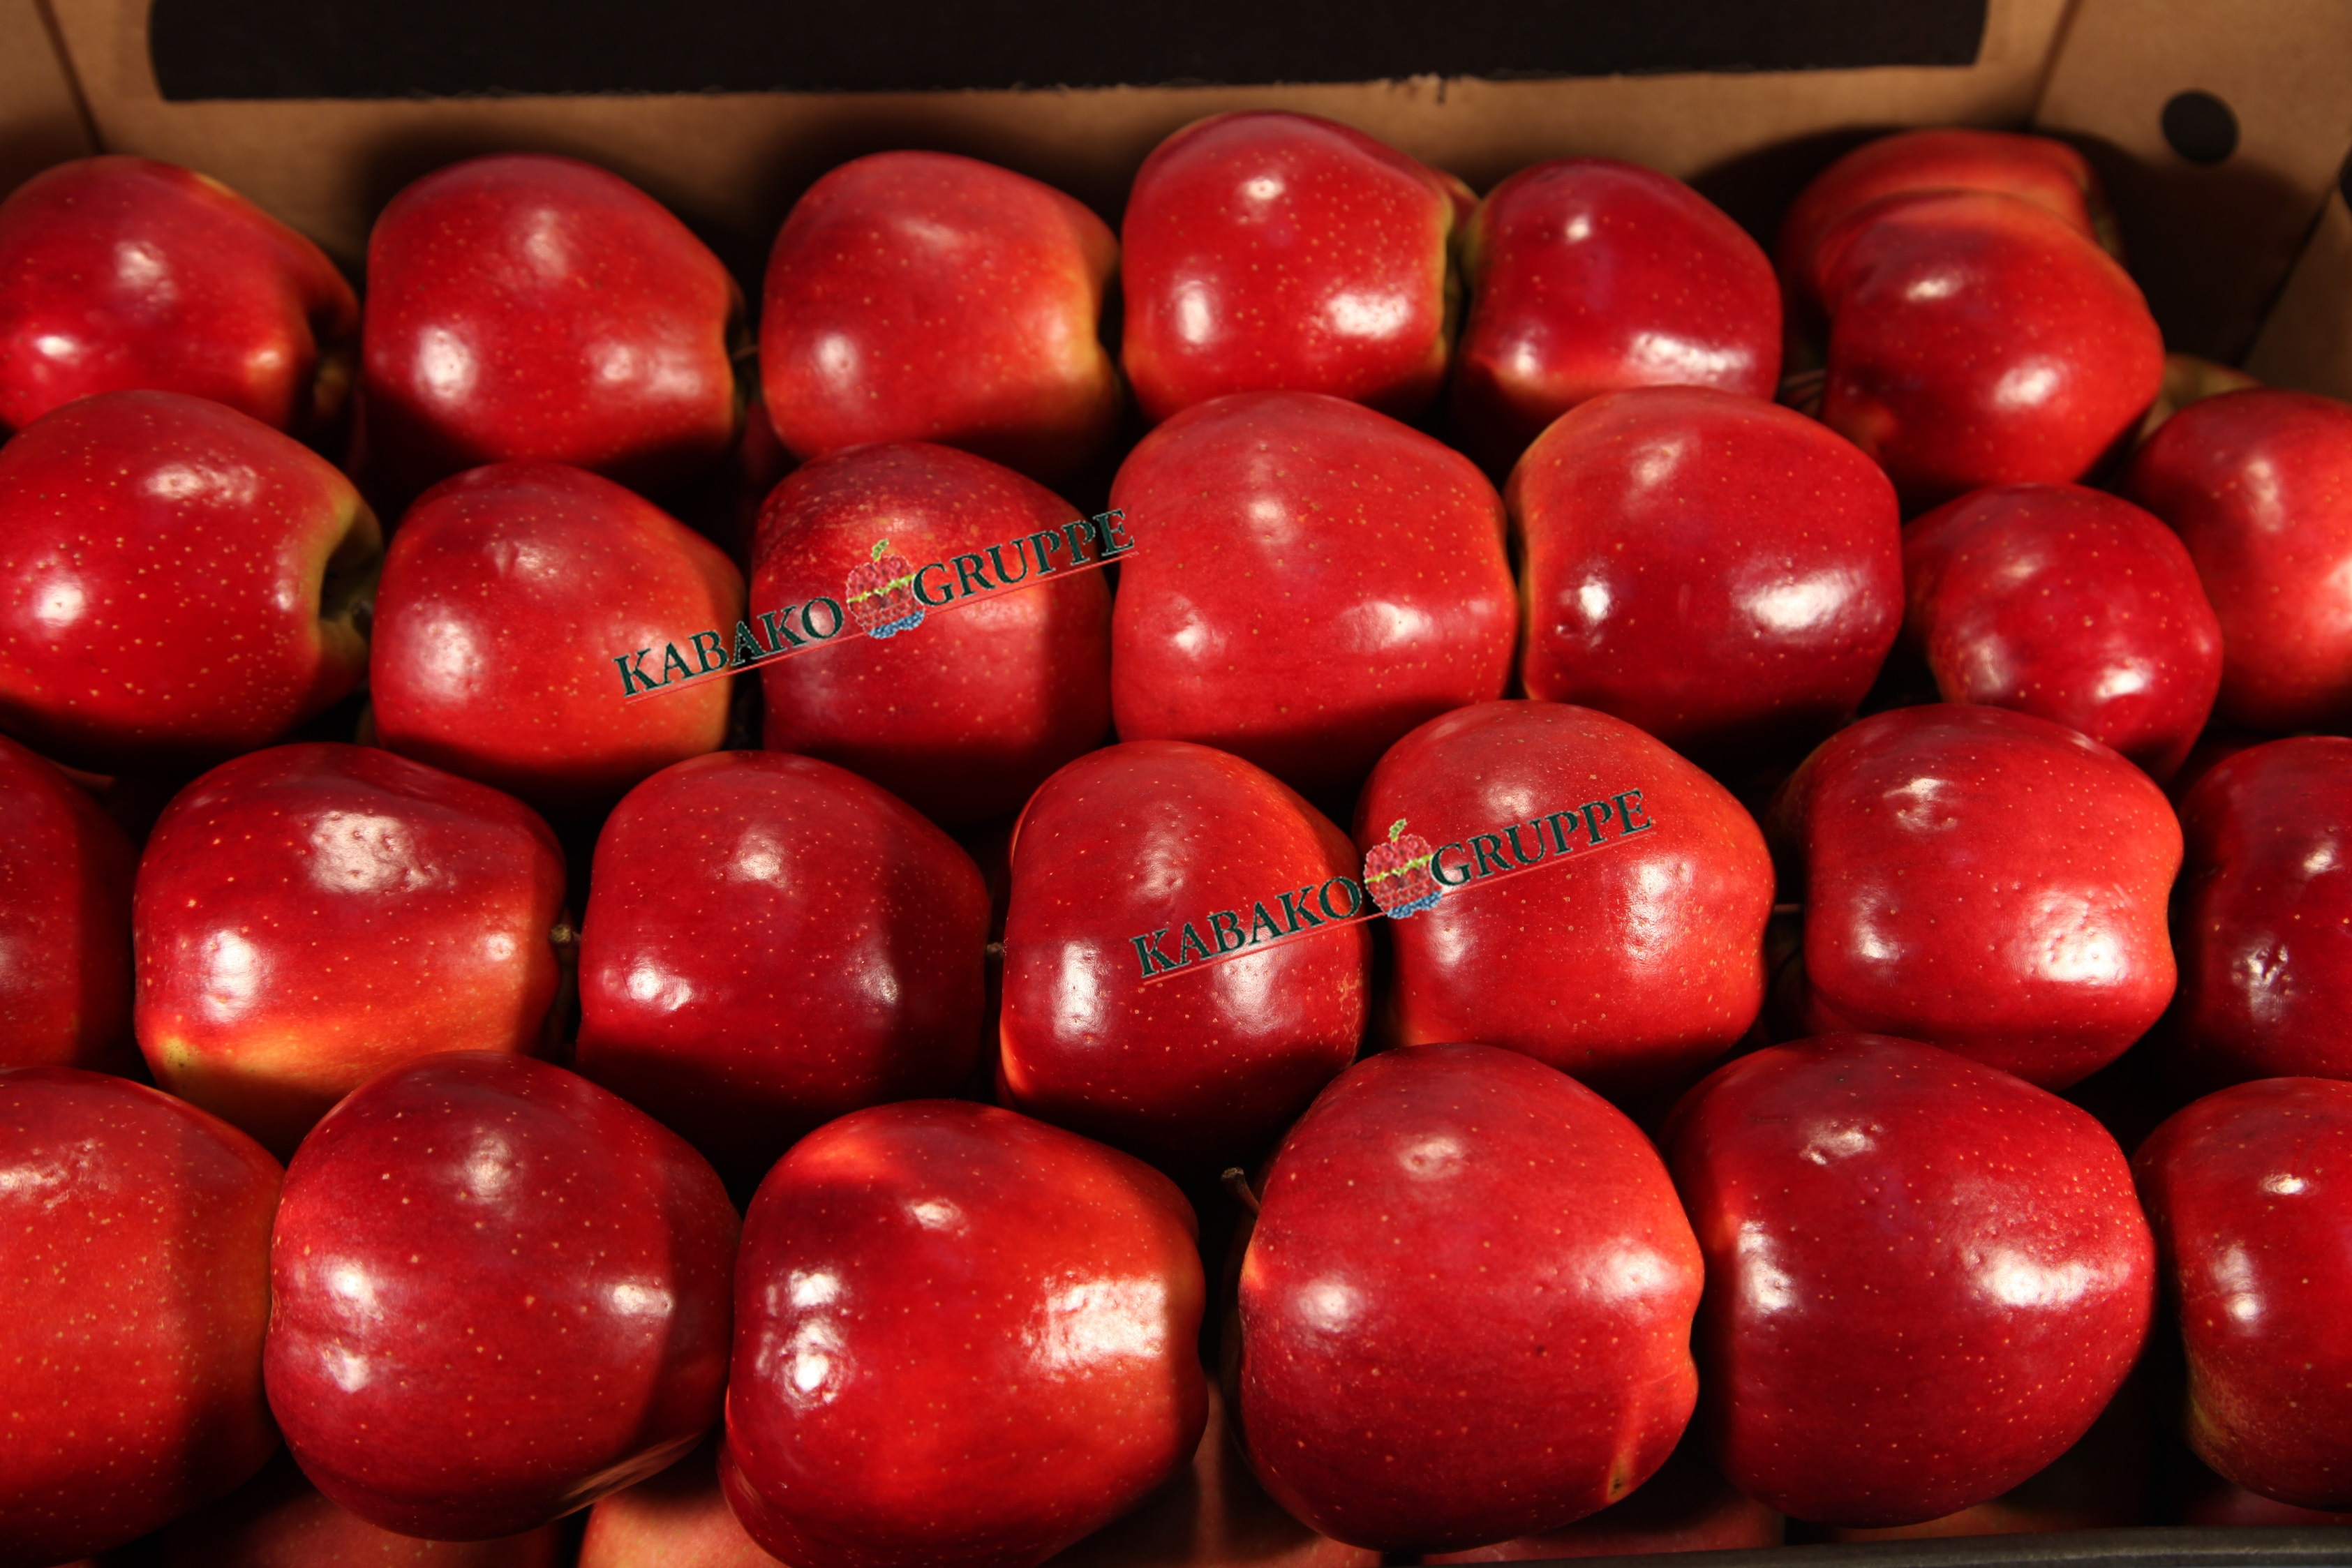 Frozen (IQF) Apples 69